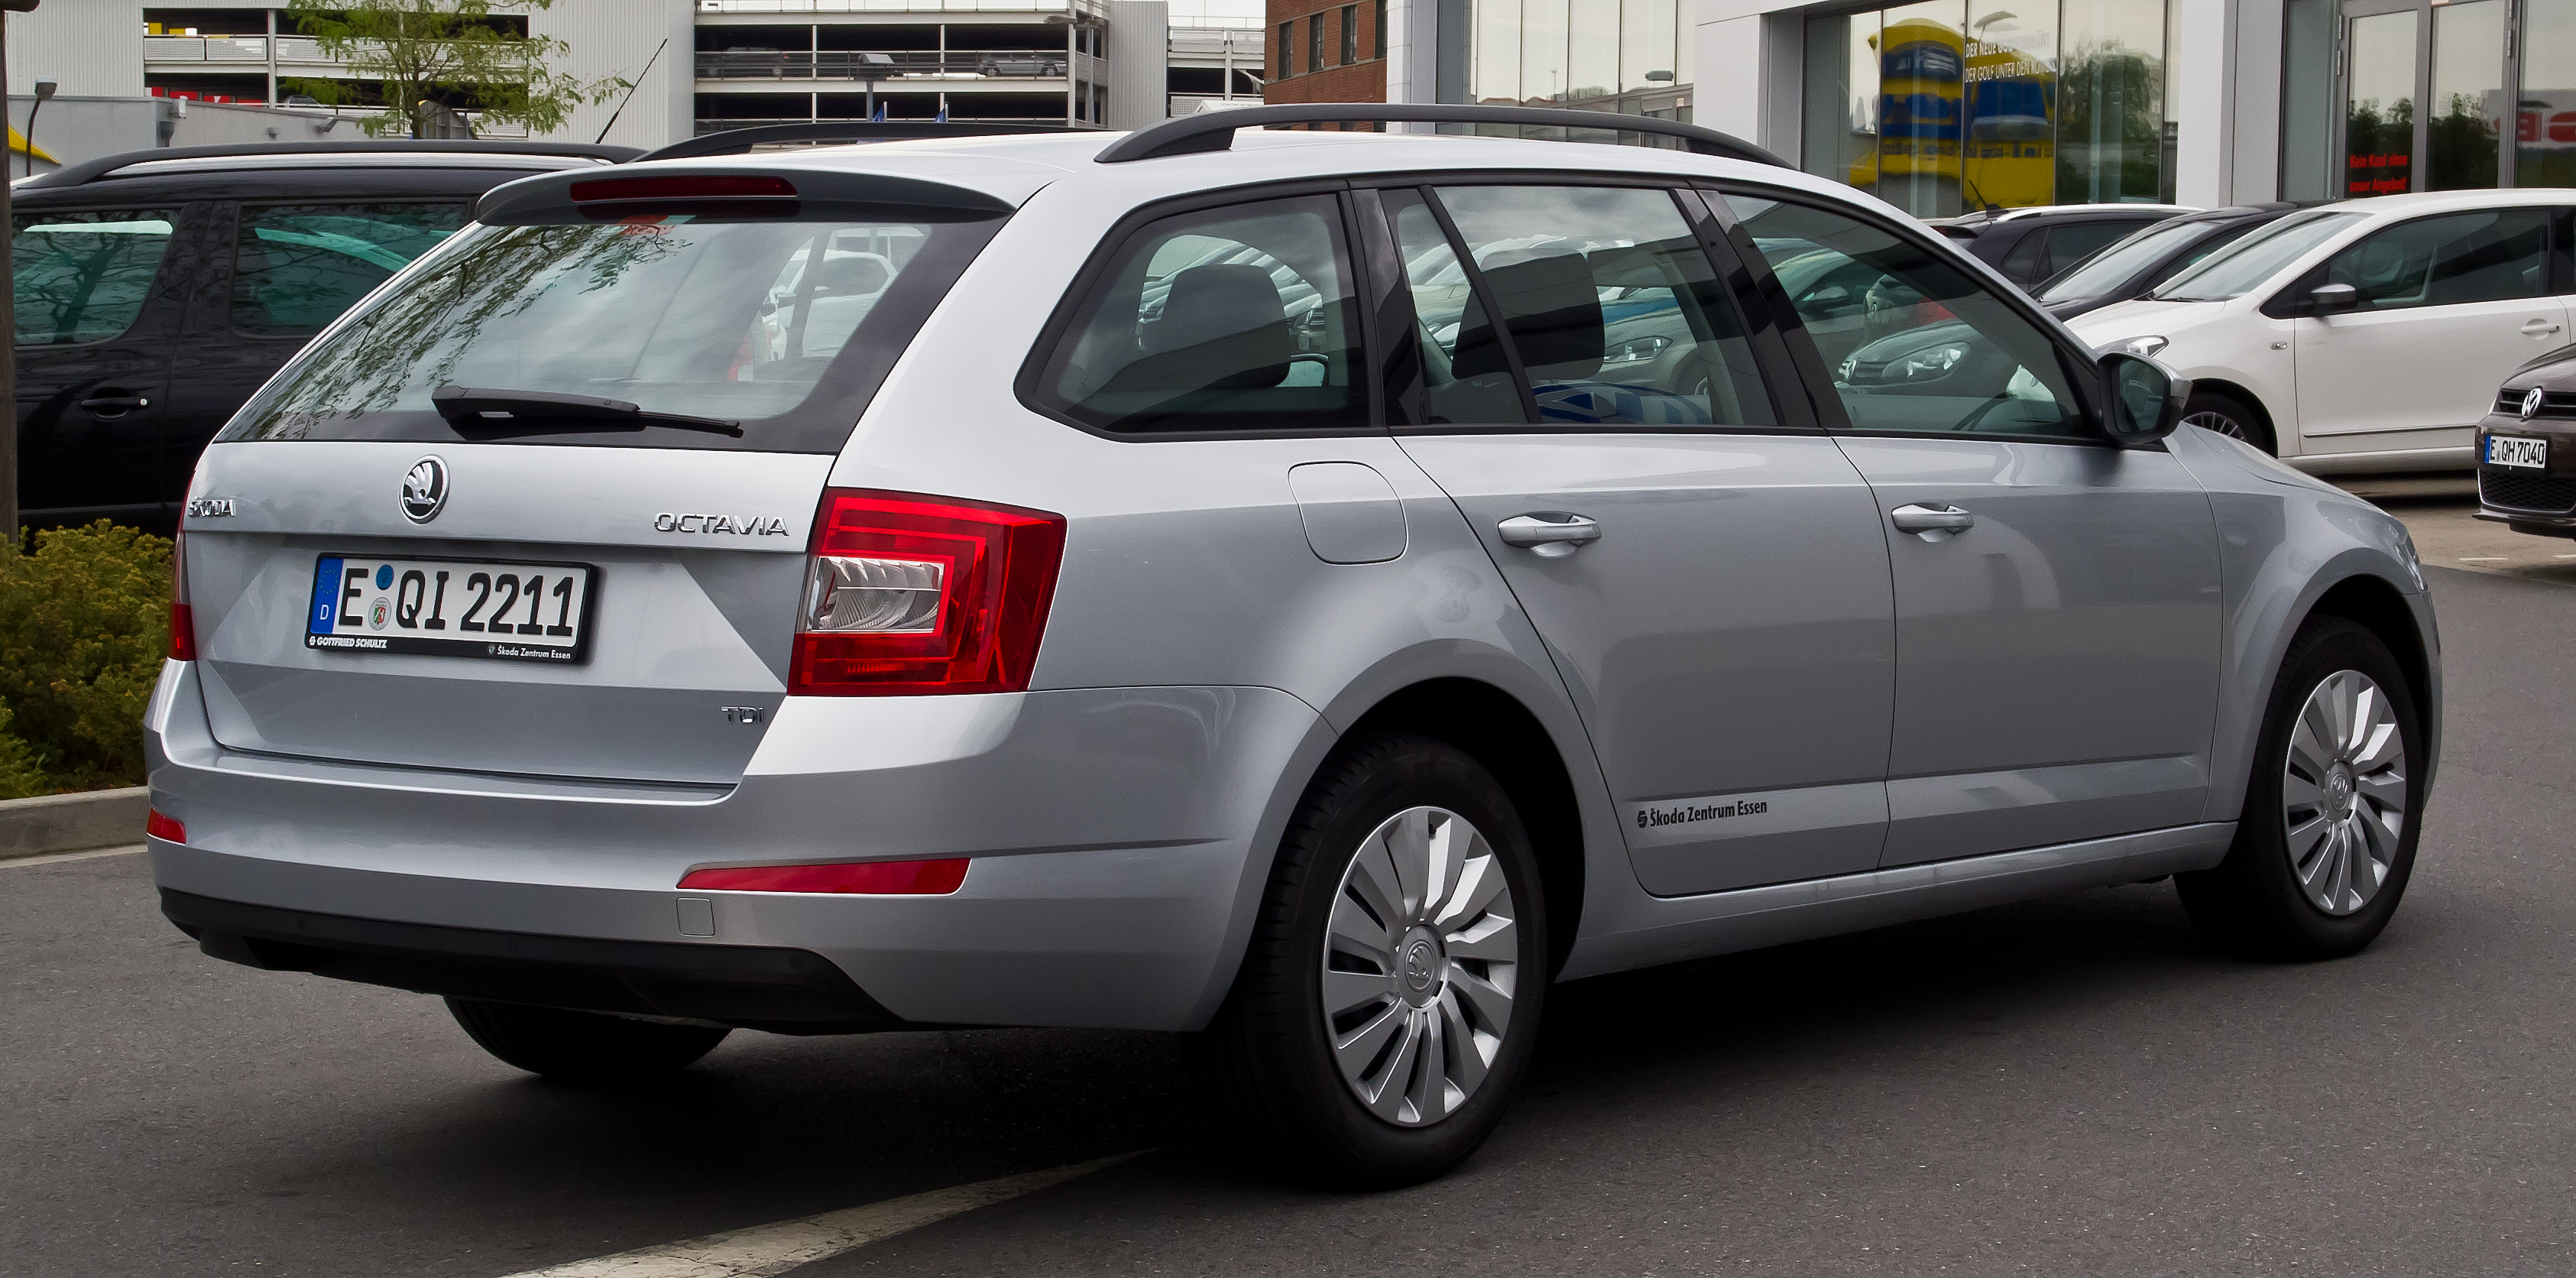 datei skoda octavia combi 1 6 tdi ambition iii heckansicht 11 august 2013. Black Bedroom Furniture Sets. Home Design Ideas